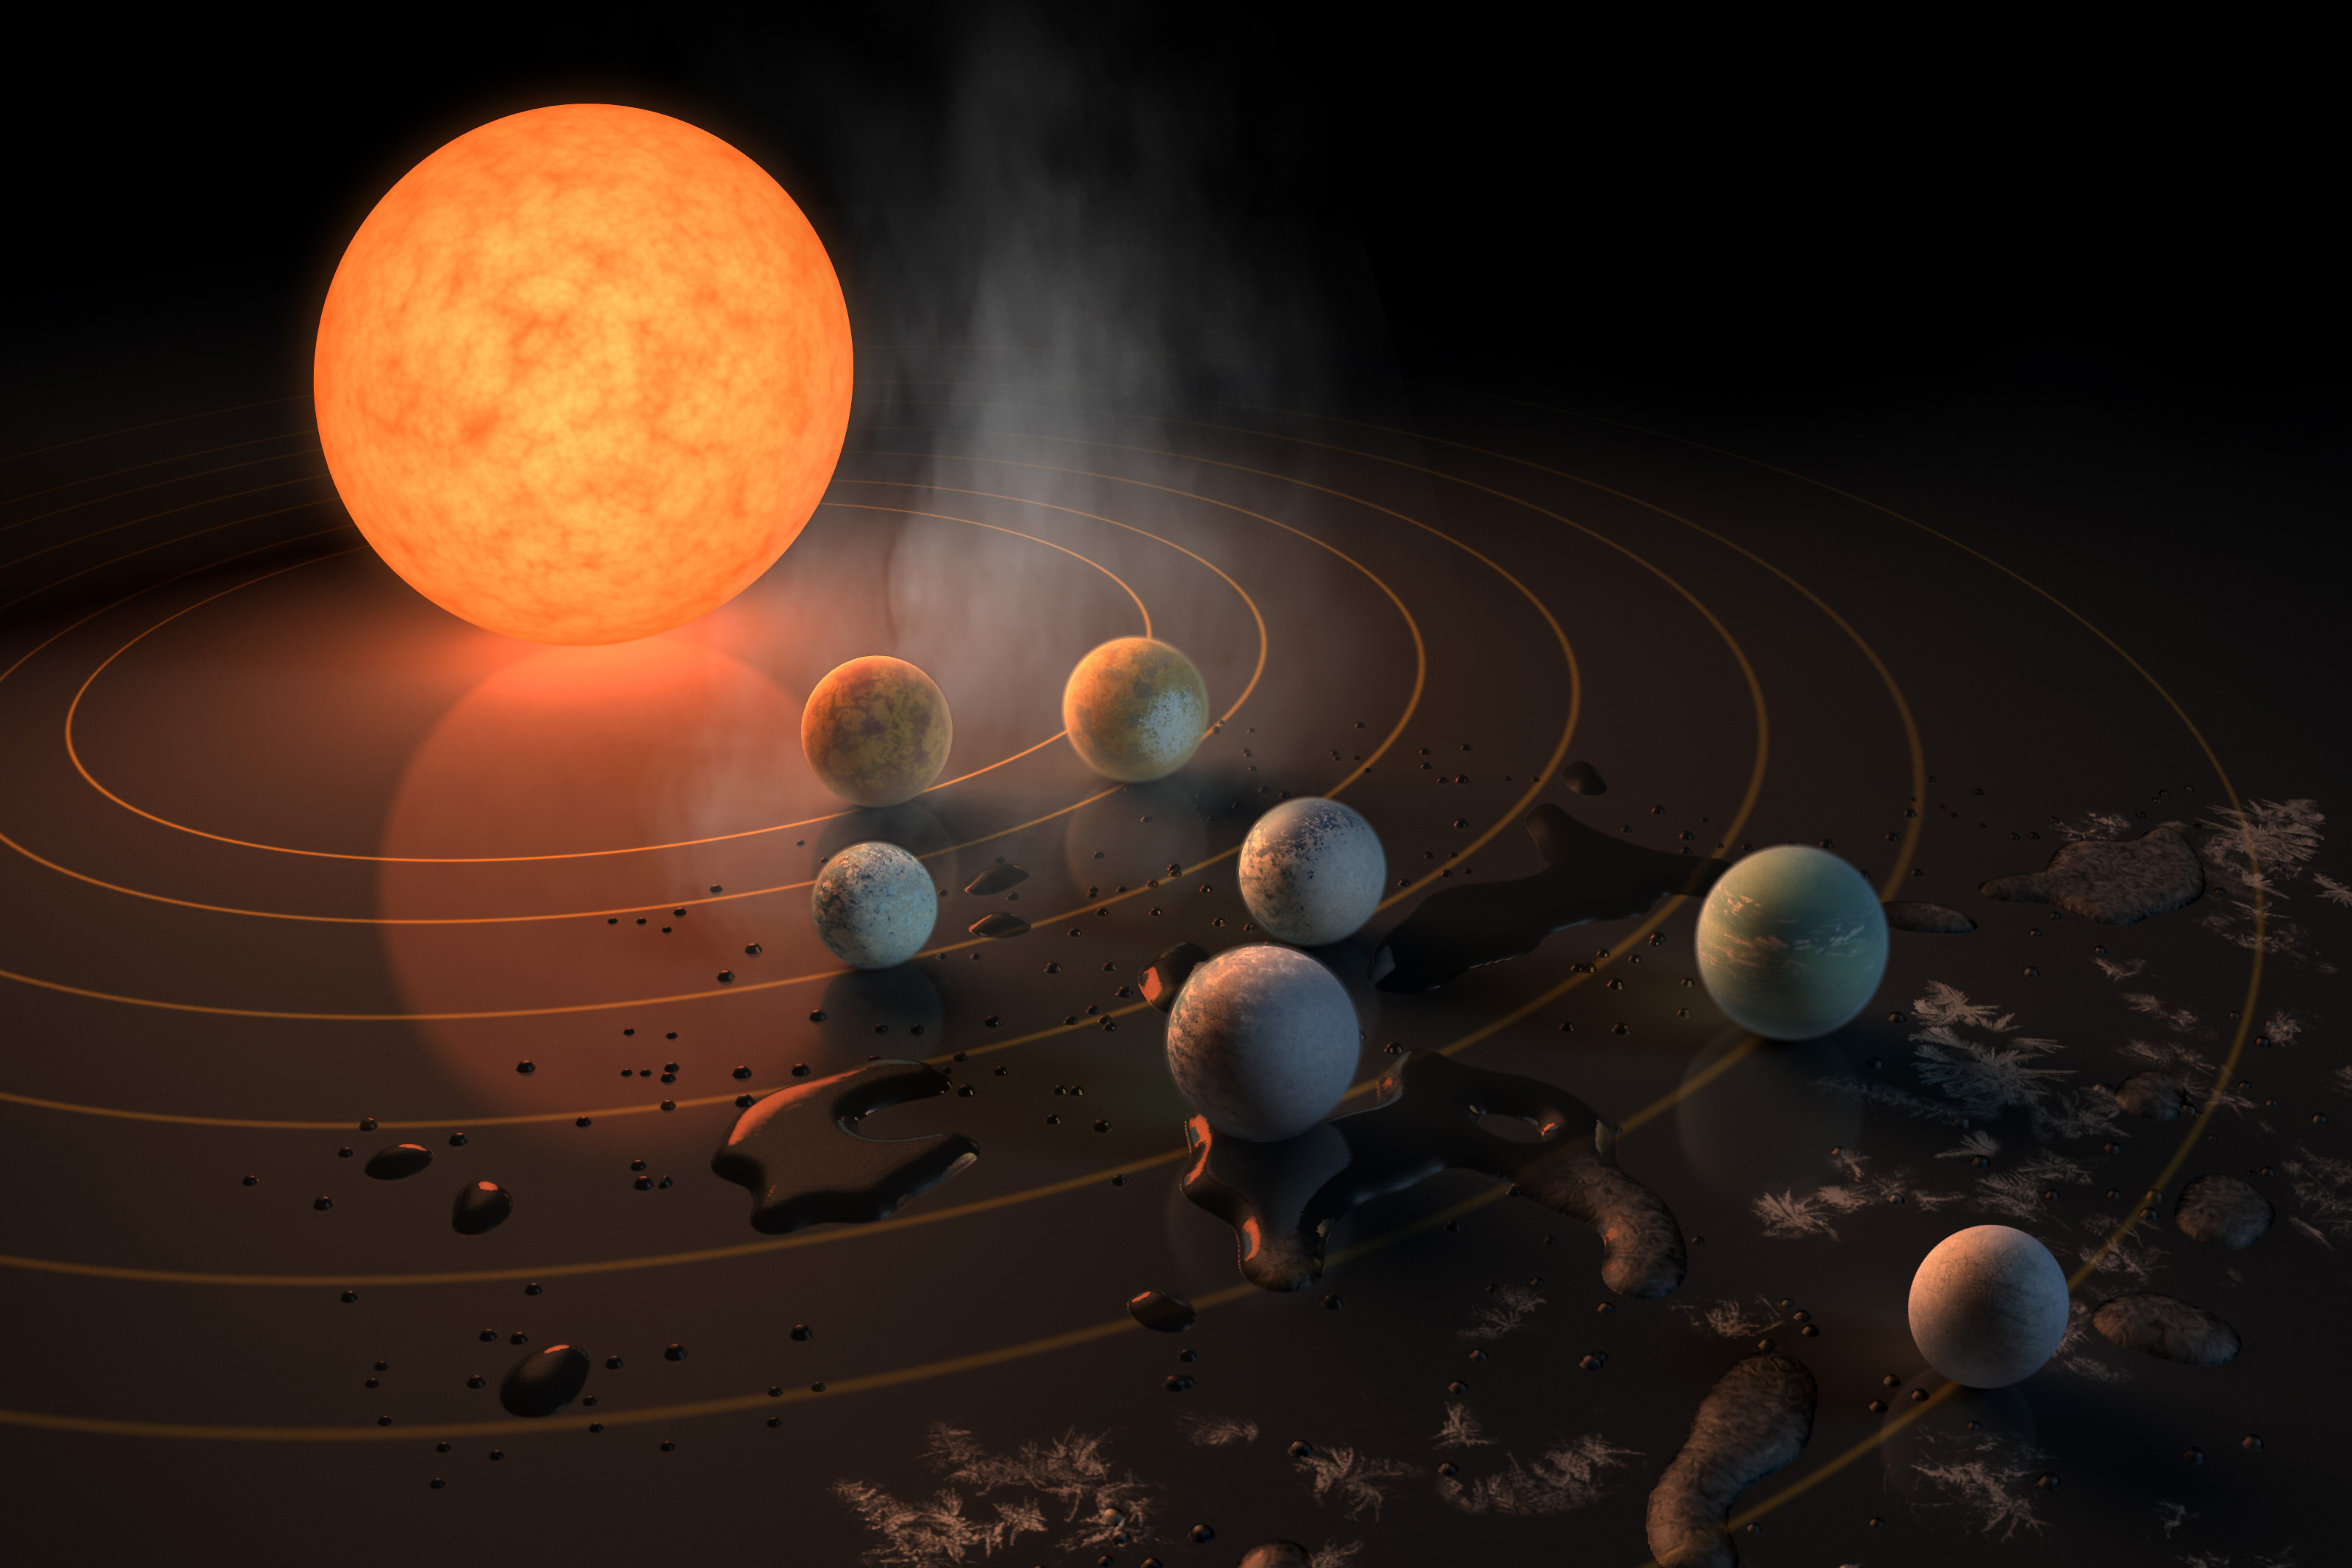 This artist's concept appeared on the Feb. 23, 2017 cover of the journal Nature announcing that the TRAPPIST-1 star, an ultra-cool dwarf, has seven Earth-size planets orbiting it. (NASA Image)